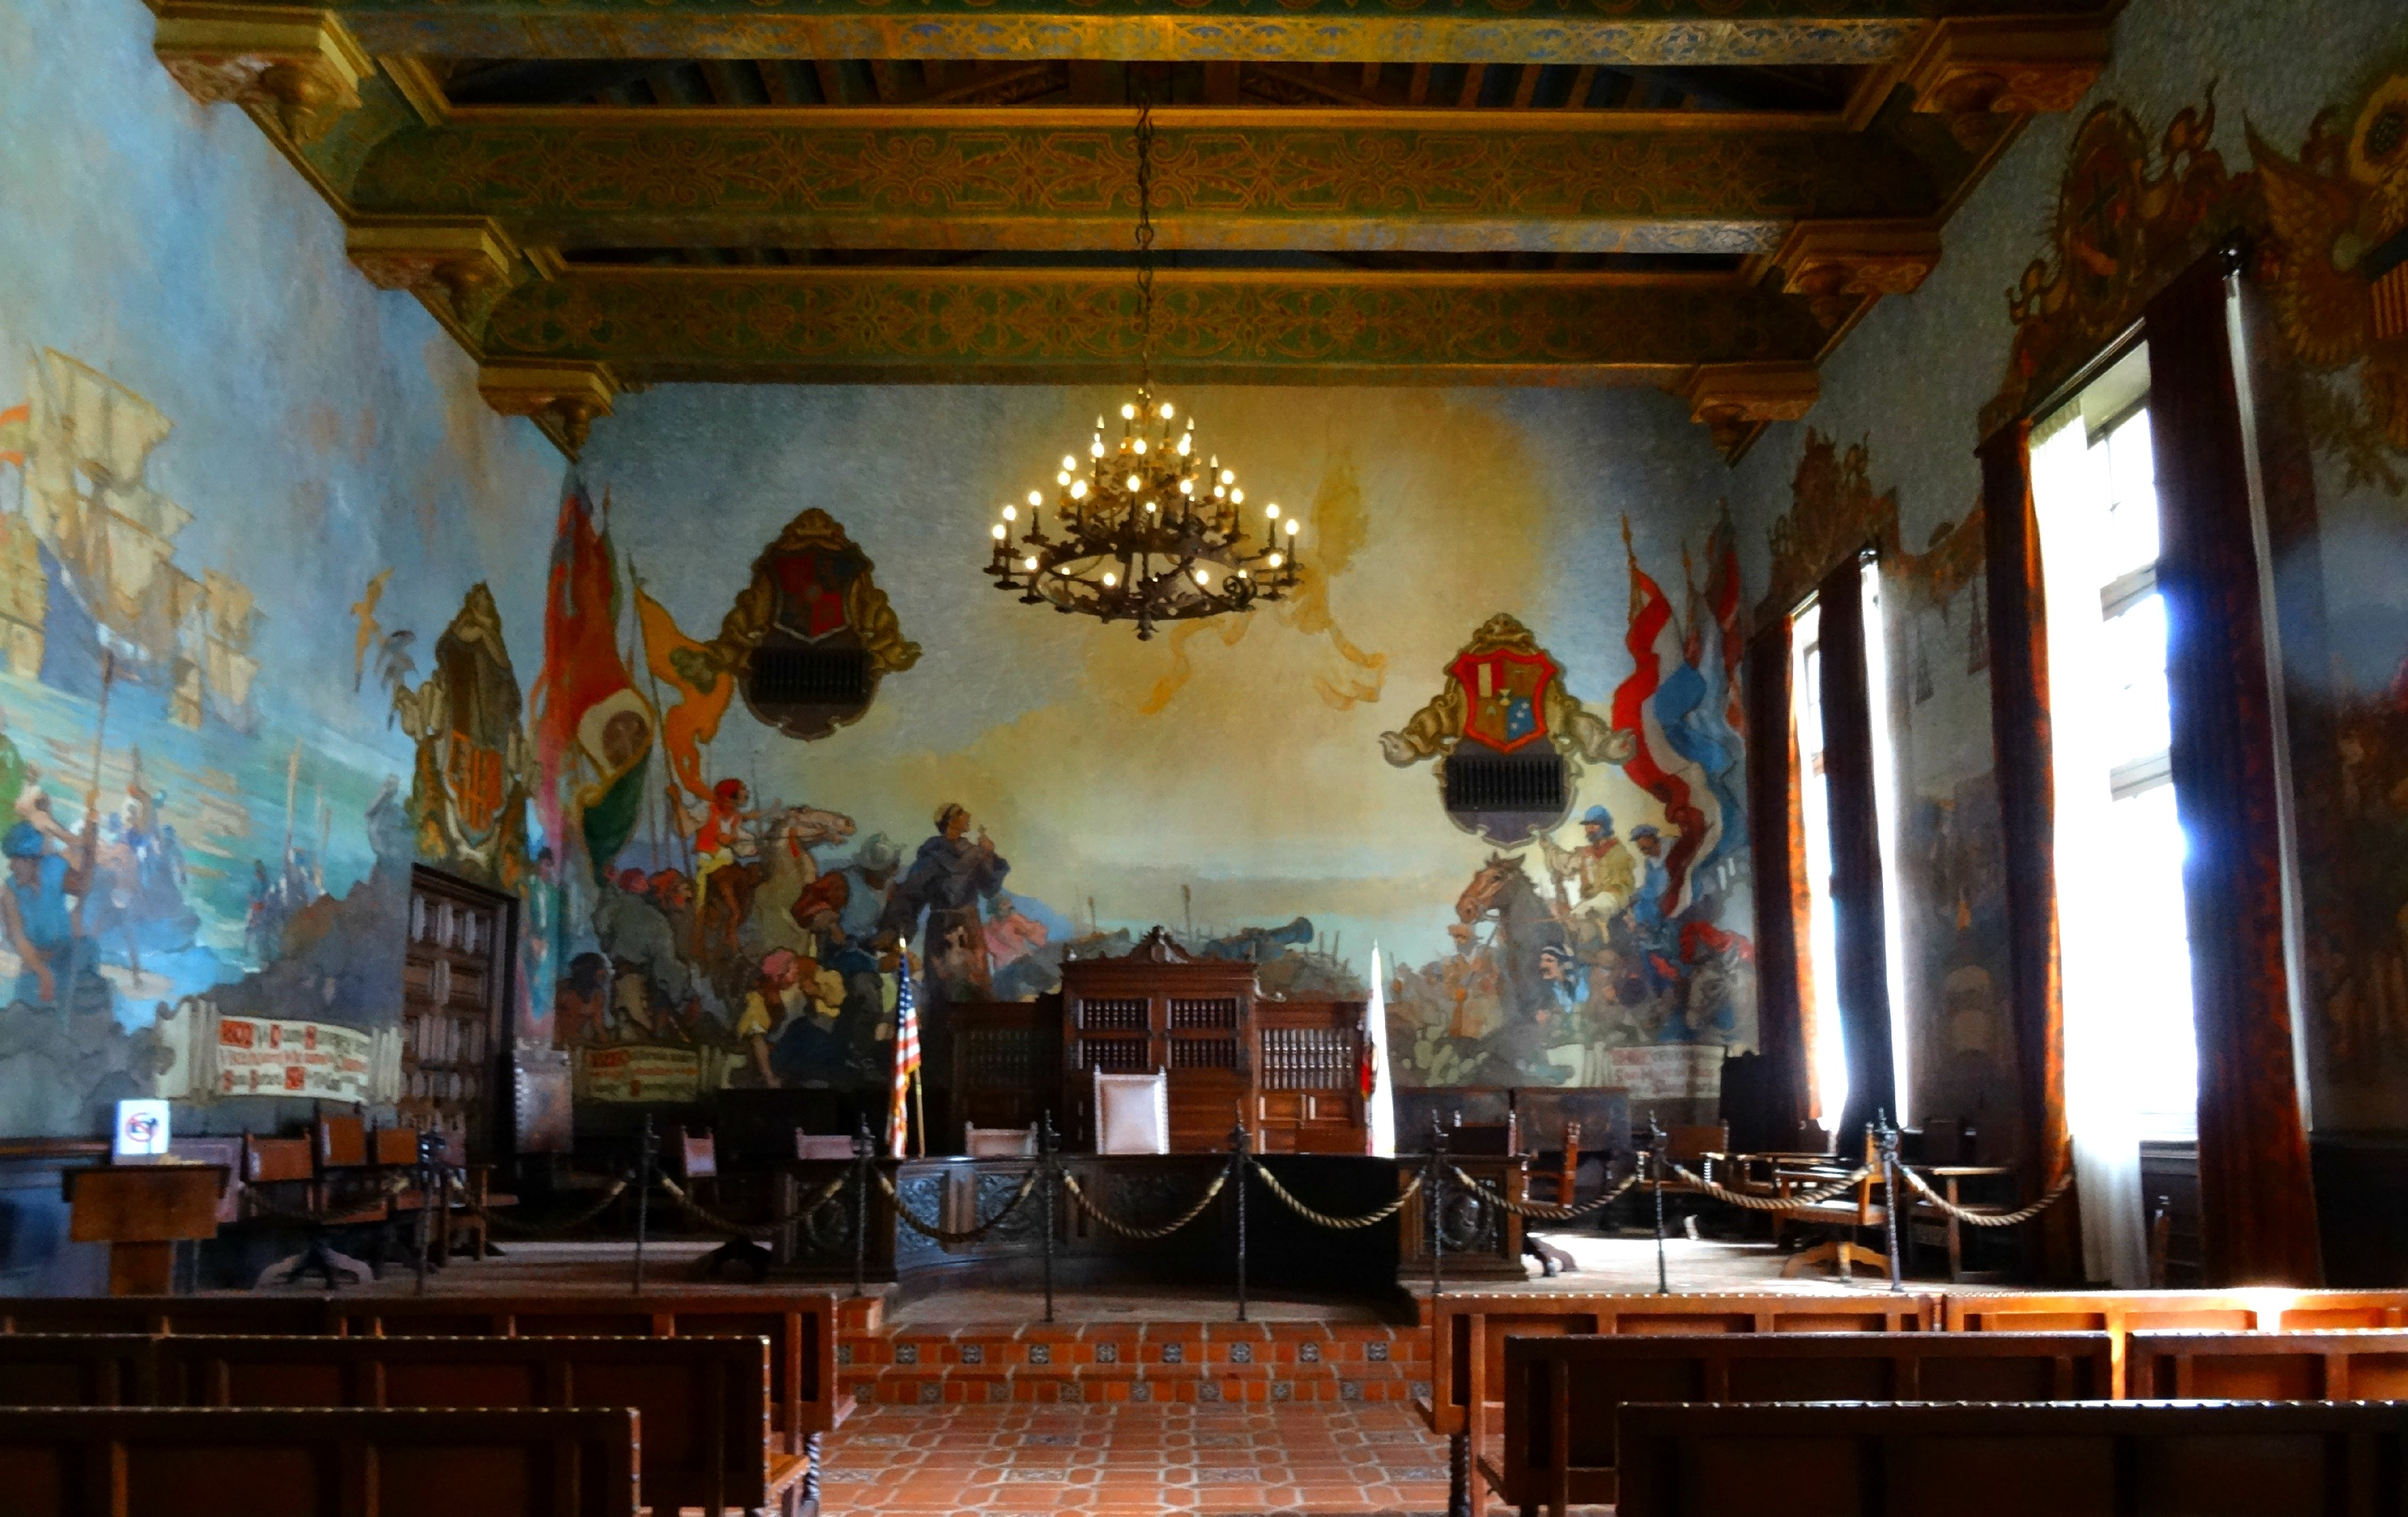 La dolce vita in santa barbara the world as i see it for Mural room santa barbara courthouse